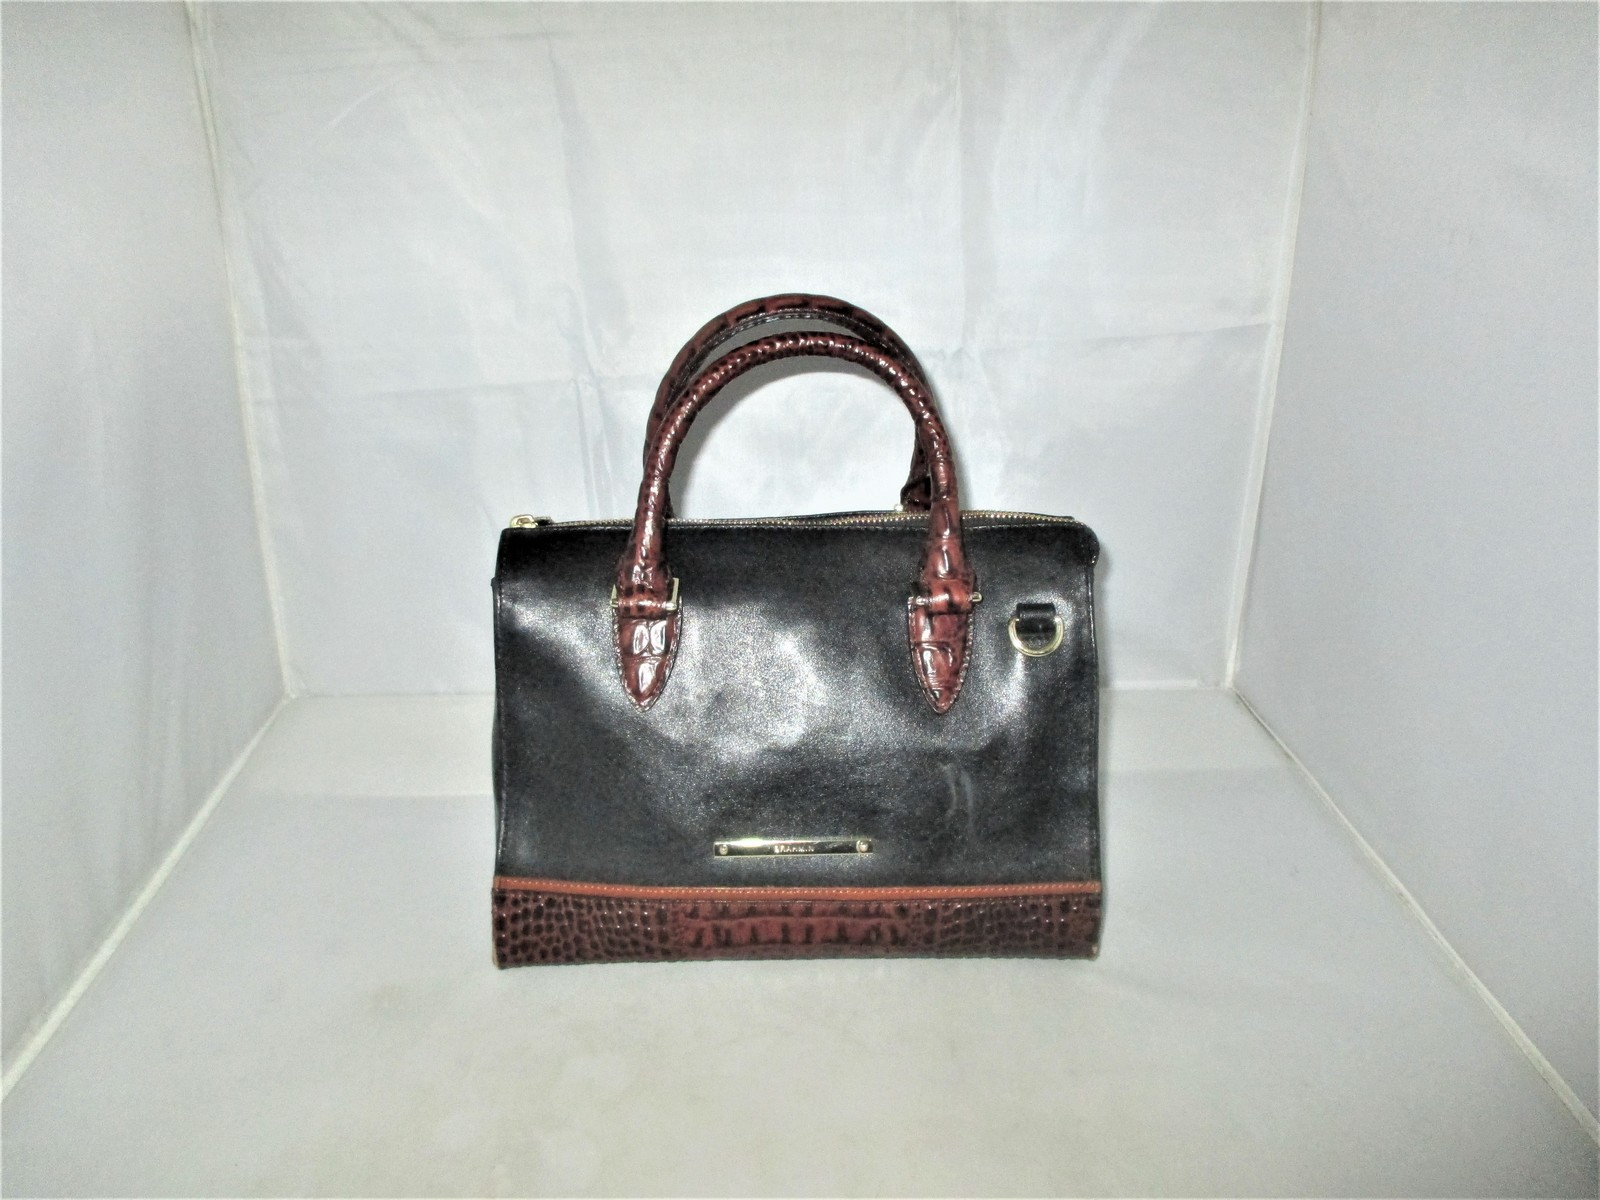 Brahmin Tuscan Tri-Texture Anywhere Convertible Satchel, Shoulder Bag,Tote $255 image 2